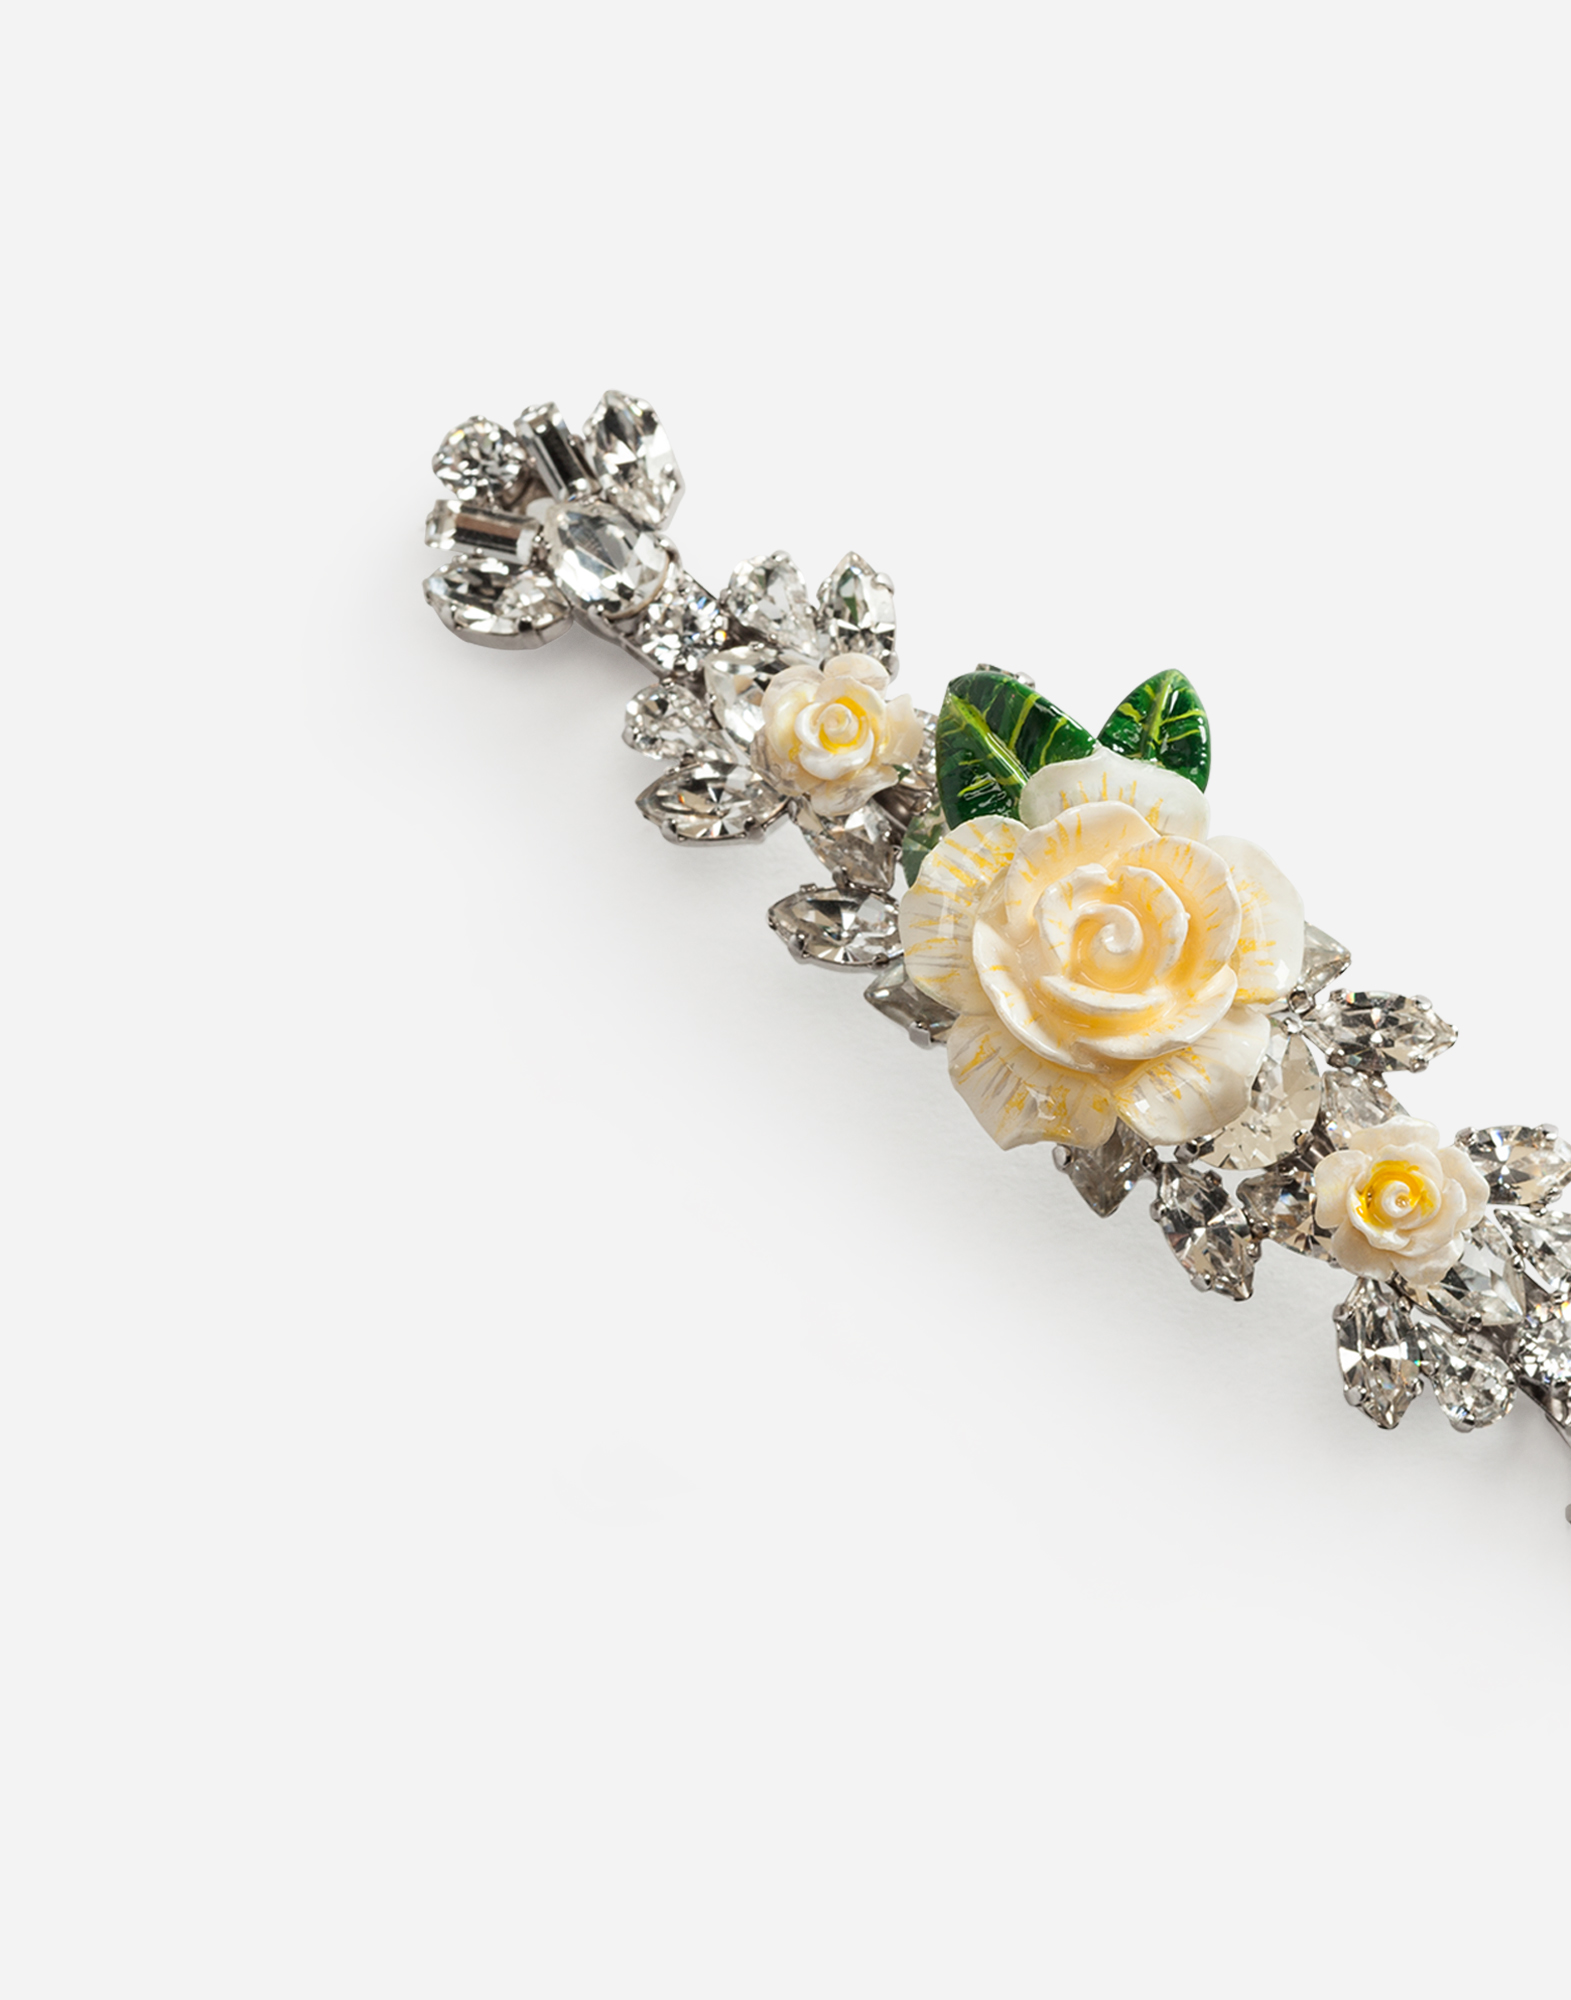 HAIR CLIP WITH ROSES